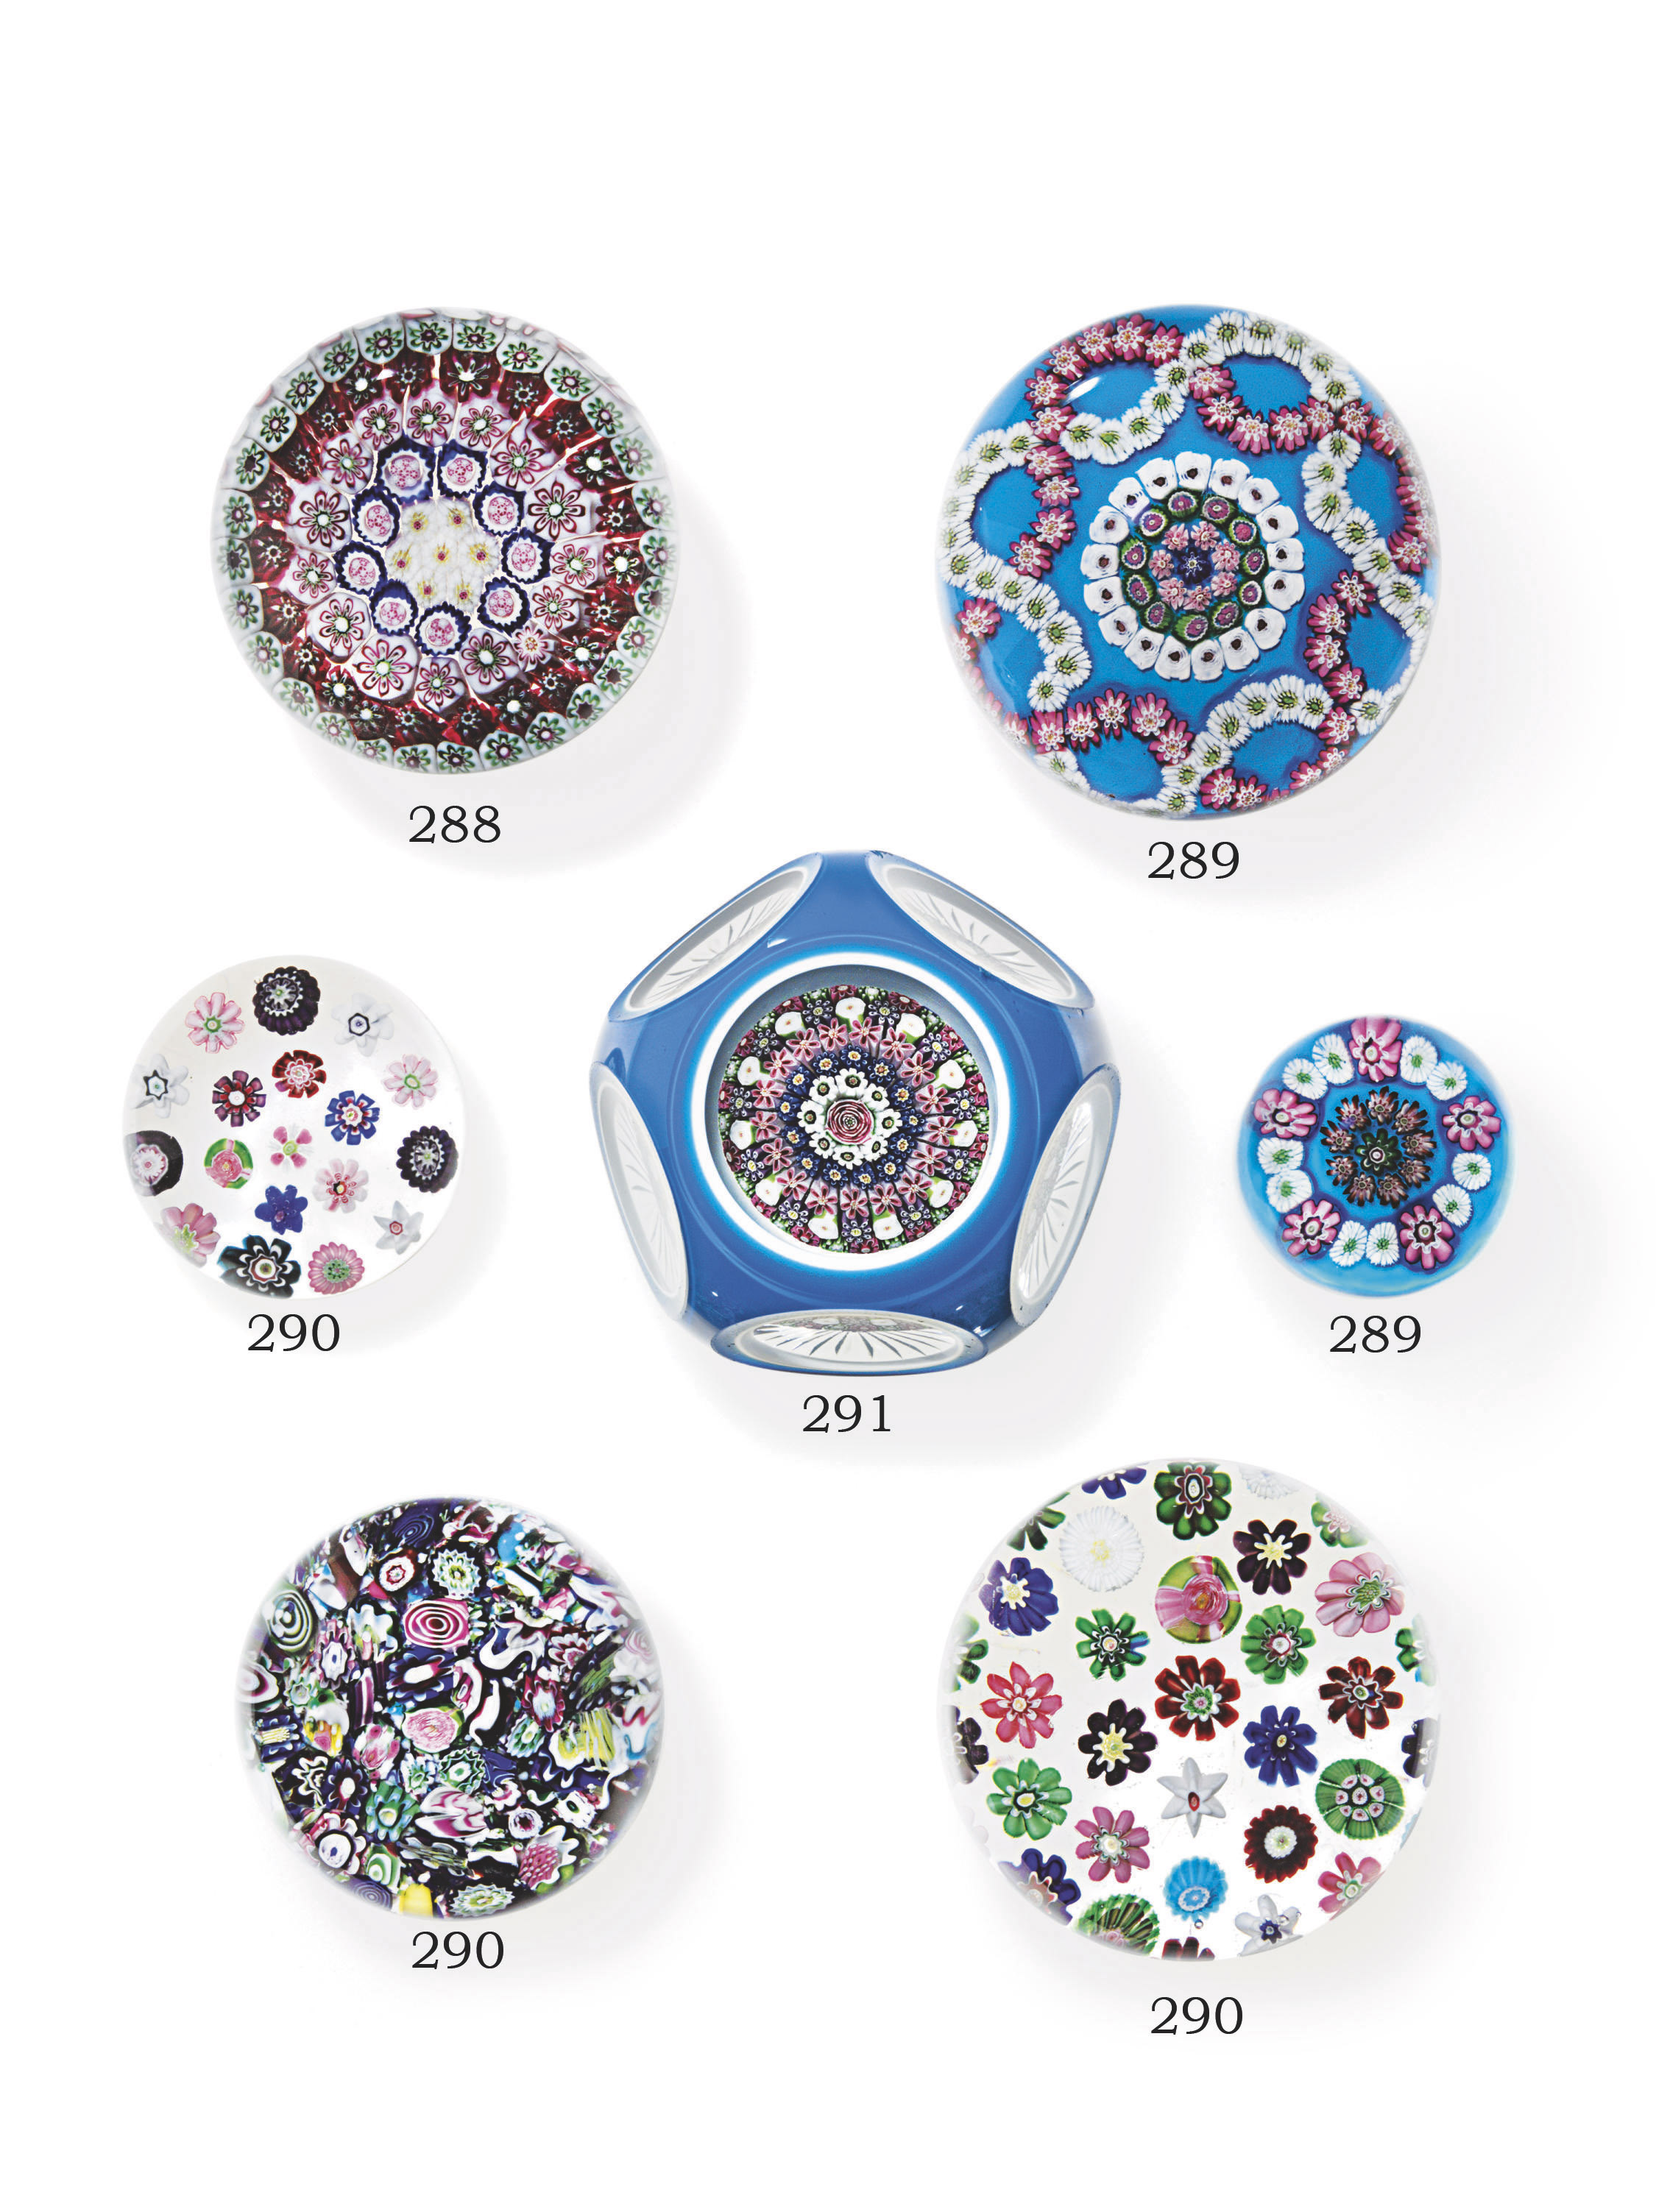 A CLICHY GLASS DOUBLE-OVERLAY CONCENTRIC MILLEFIORI MUSHROOM WEIGHT